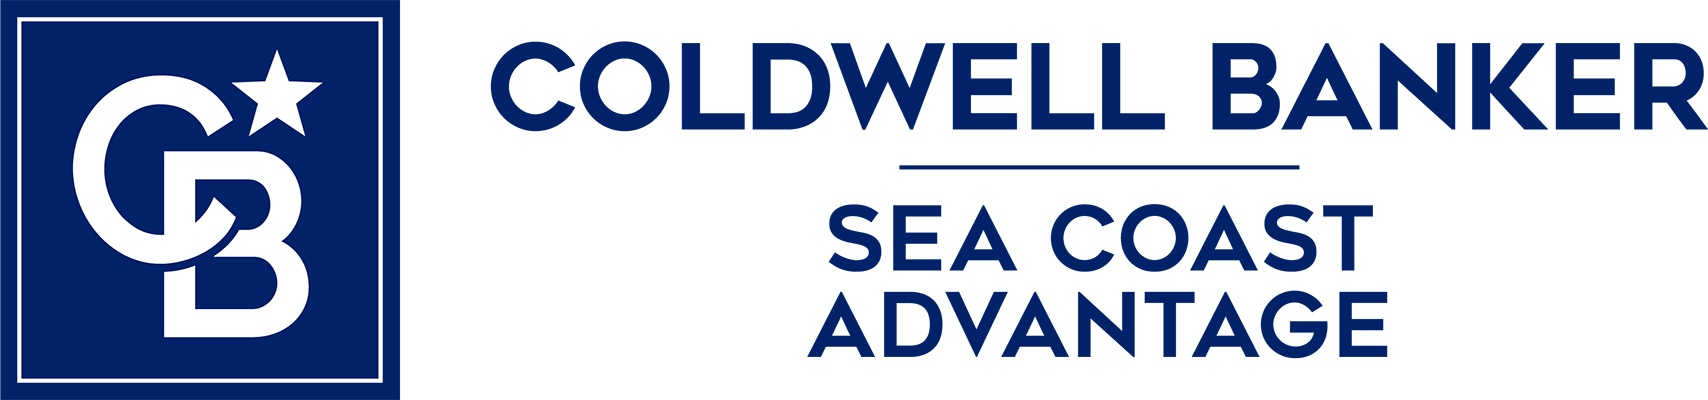 Heather O'Sullivan - Coldwell Banker Sea Coast Advantage Realty Logo